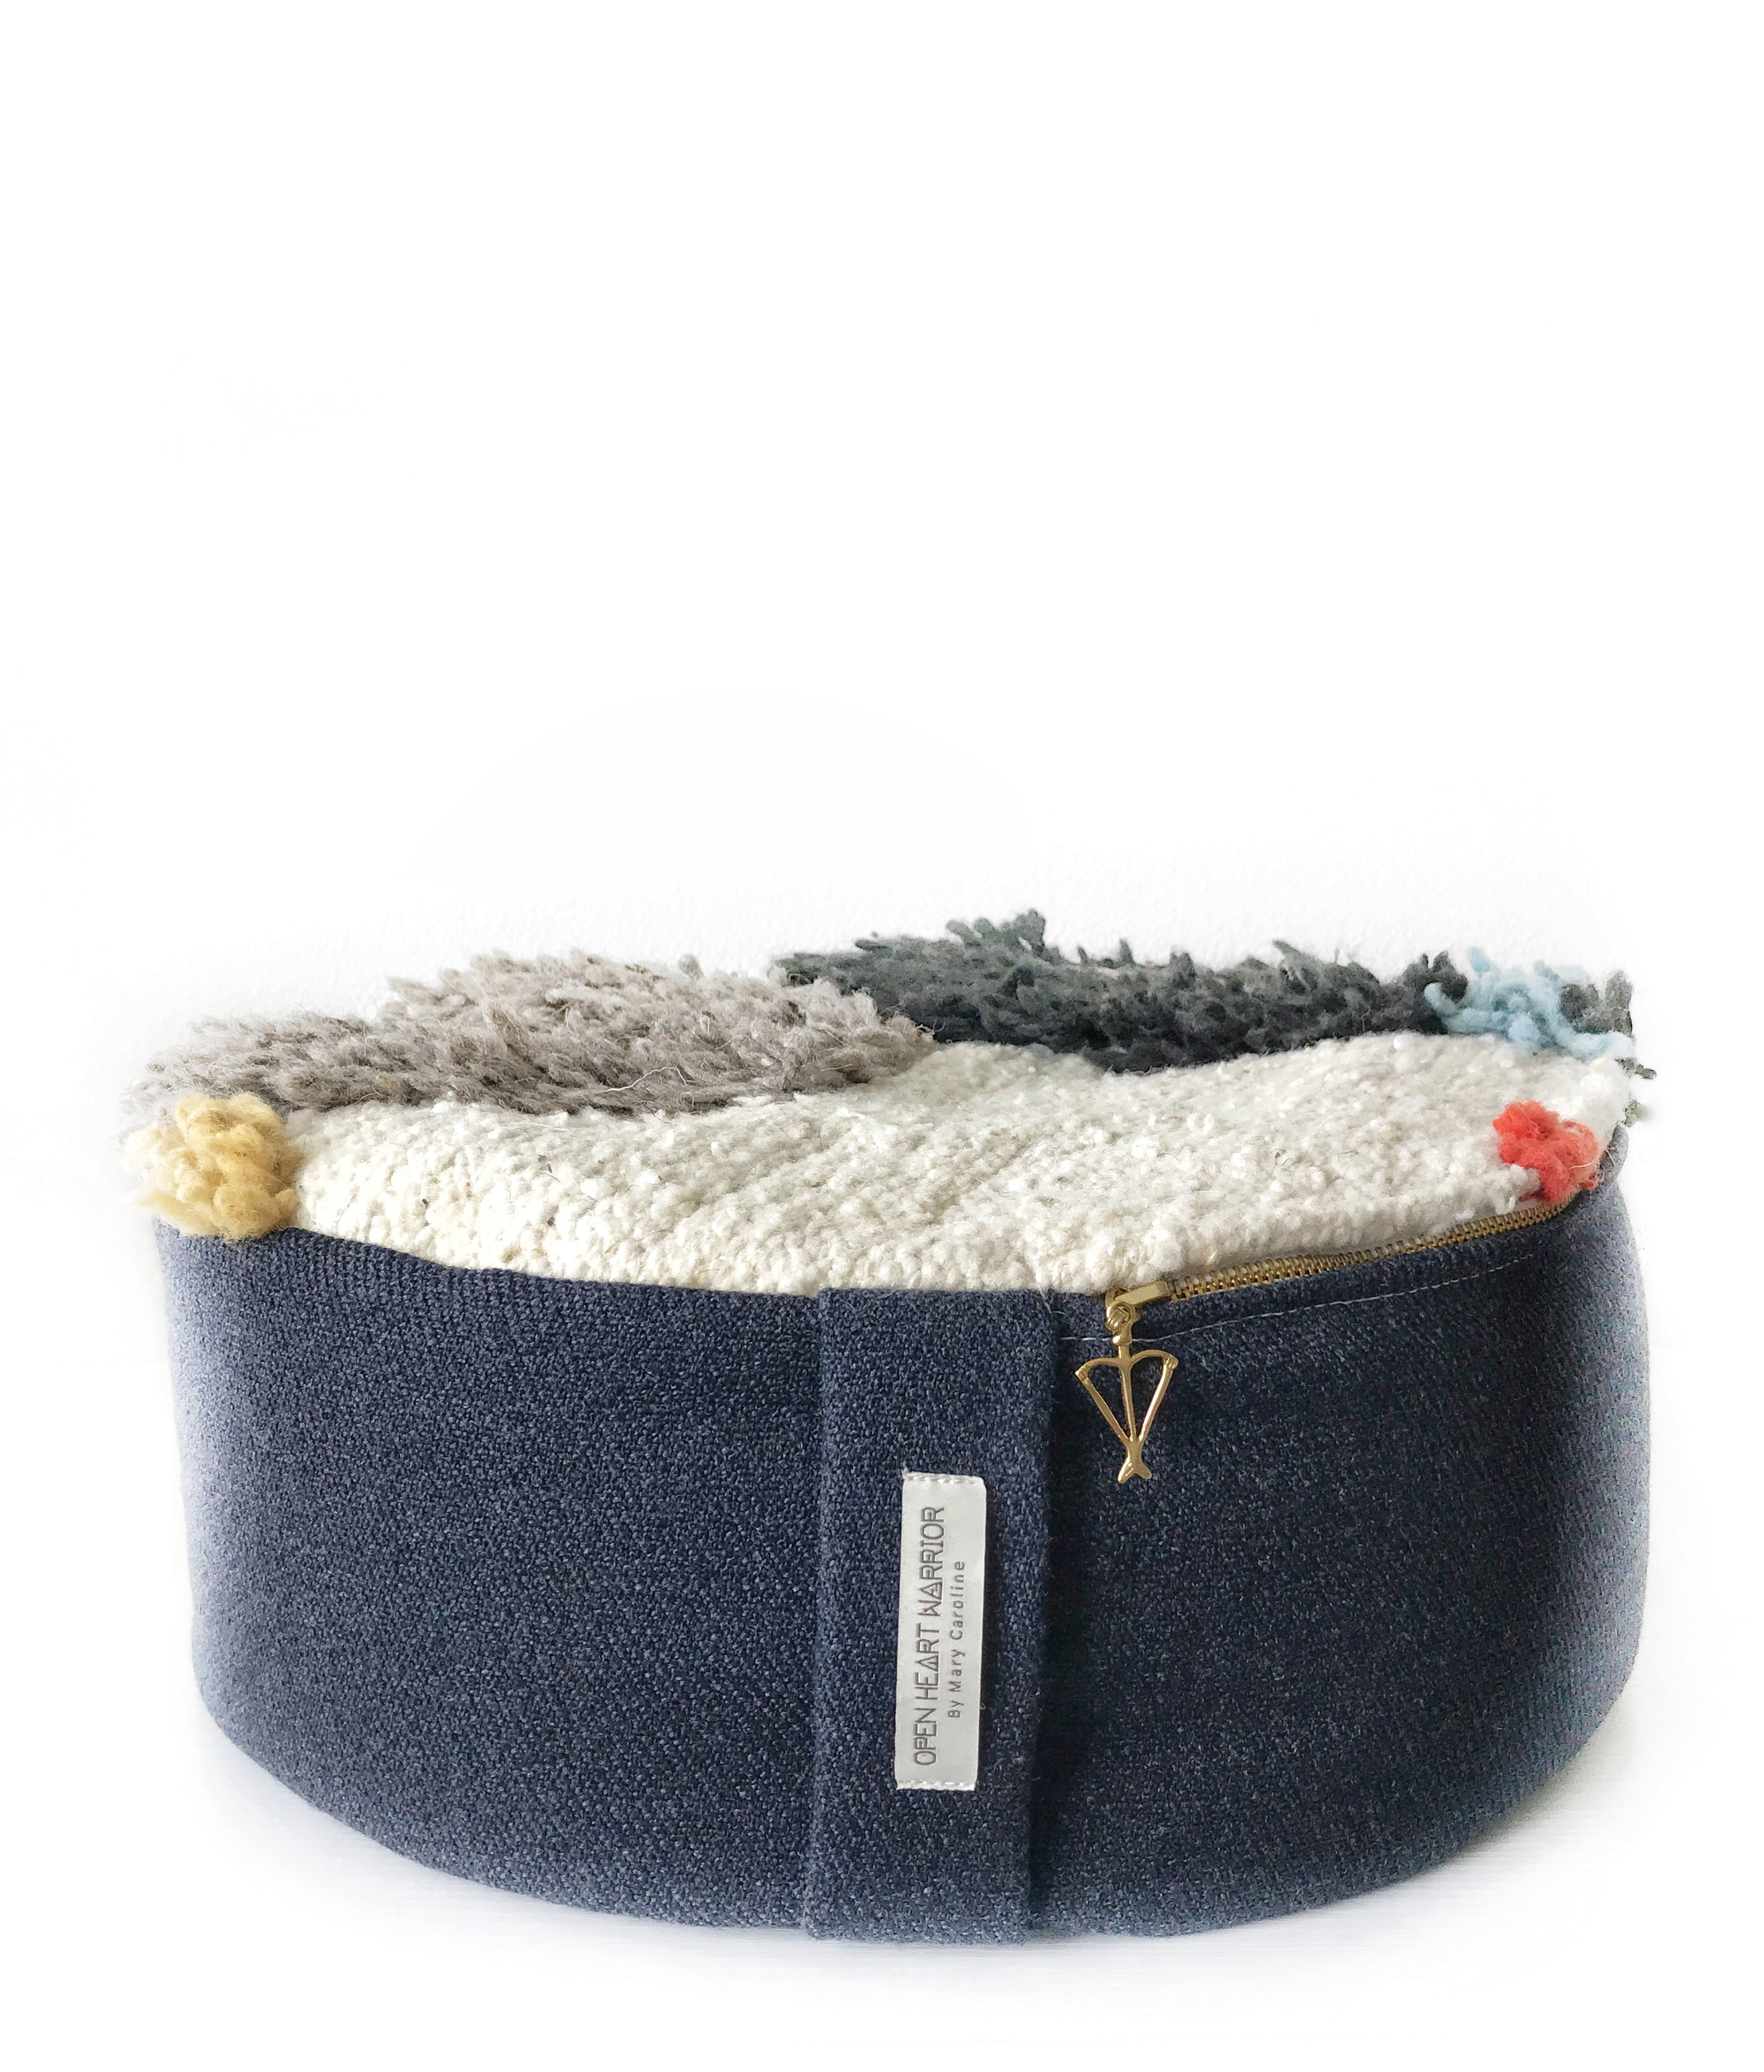 PRE-SALE Sustainable Shag Meditation Cushion Floor Seat